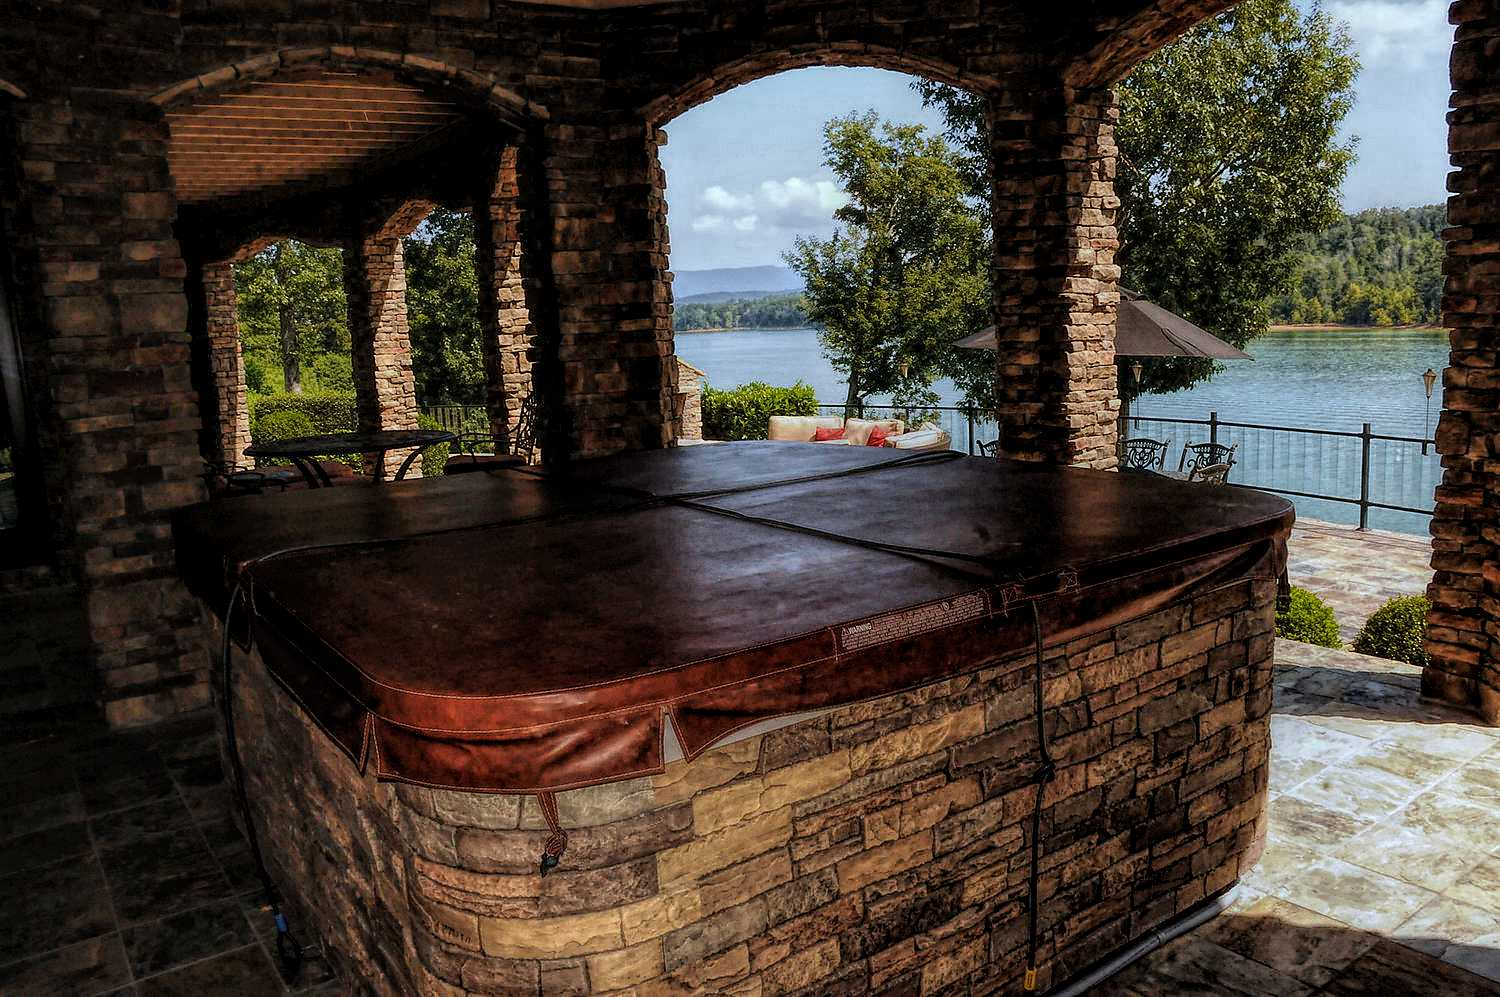 Outdoor hot tub with endless views of the lake